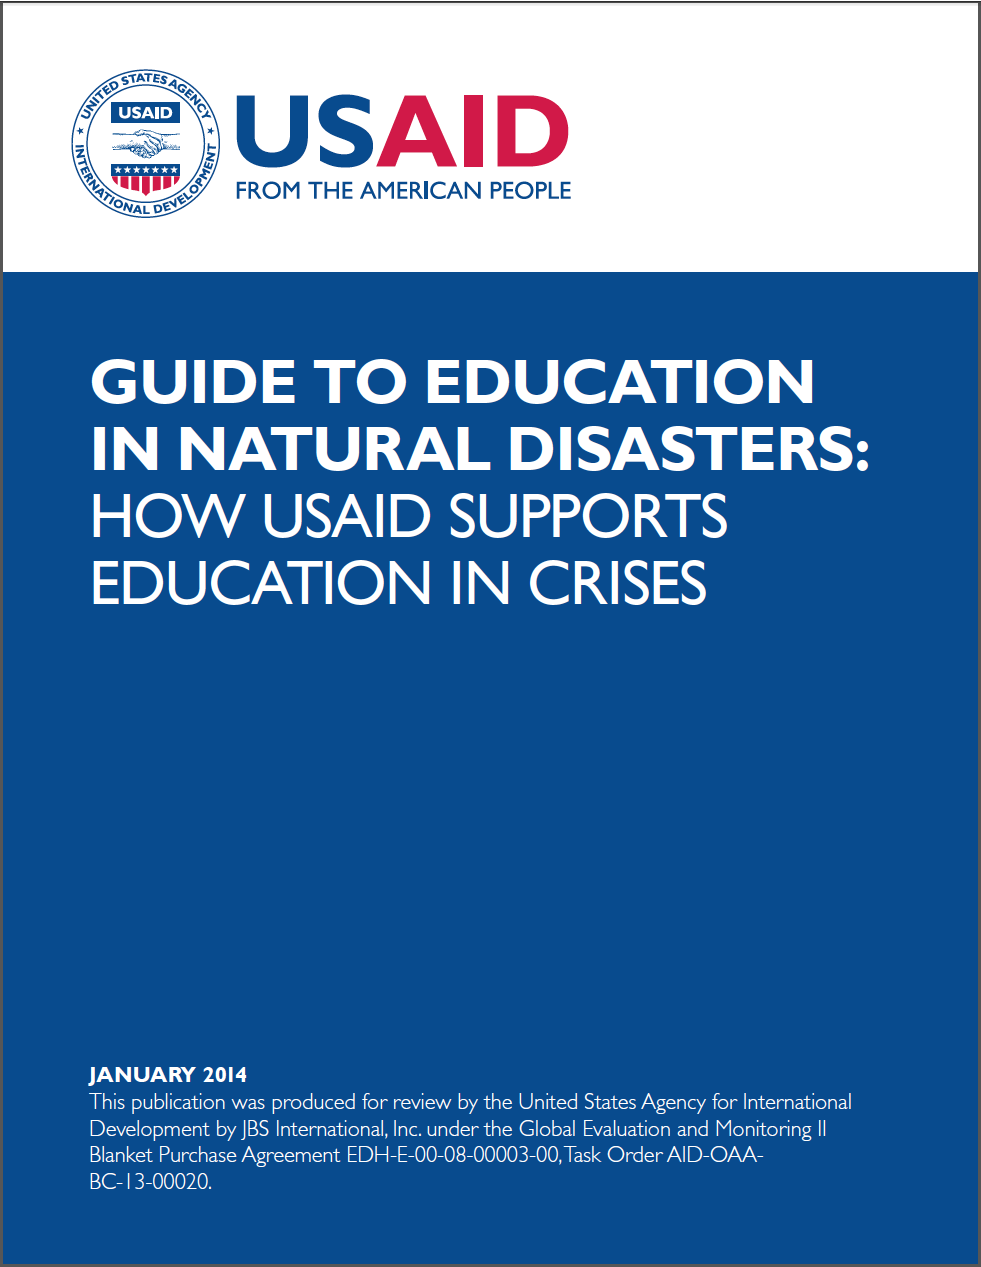 Guide to Education in Natural Disasters: How USAID Supports Education in Crises